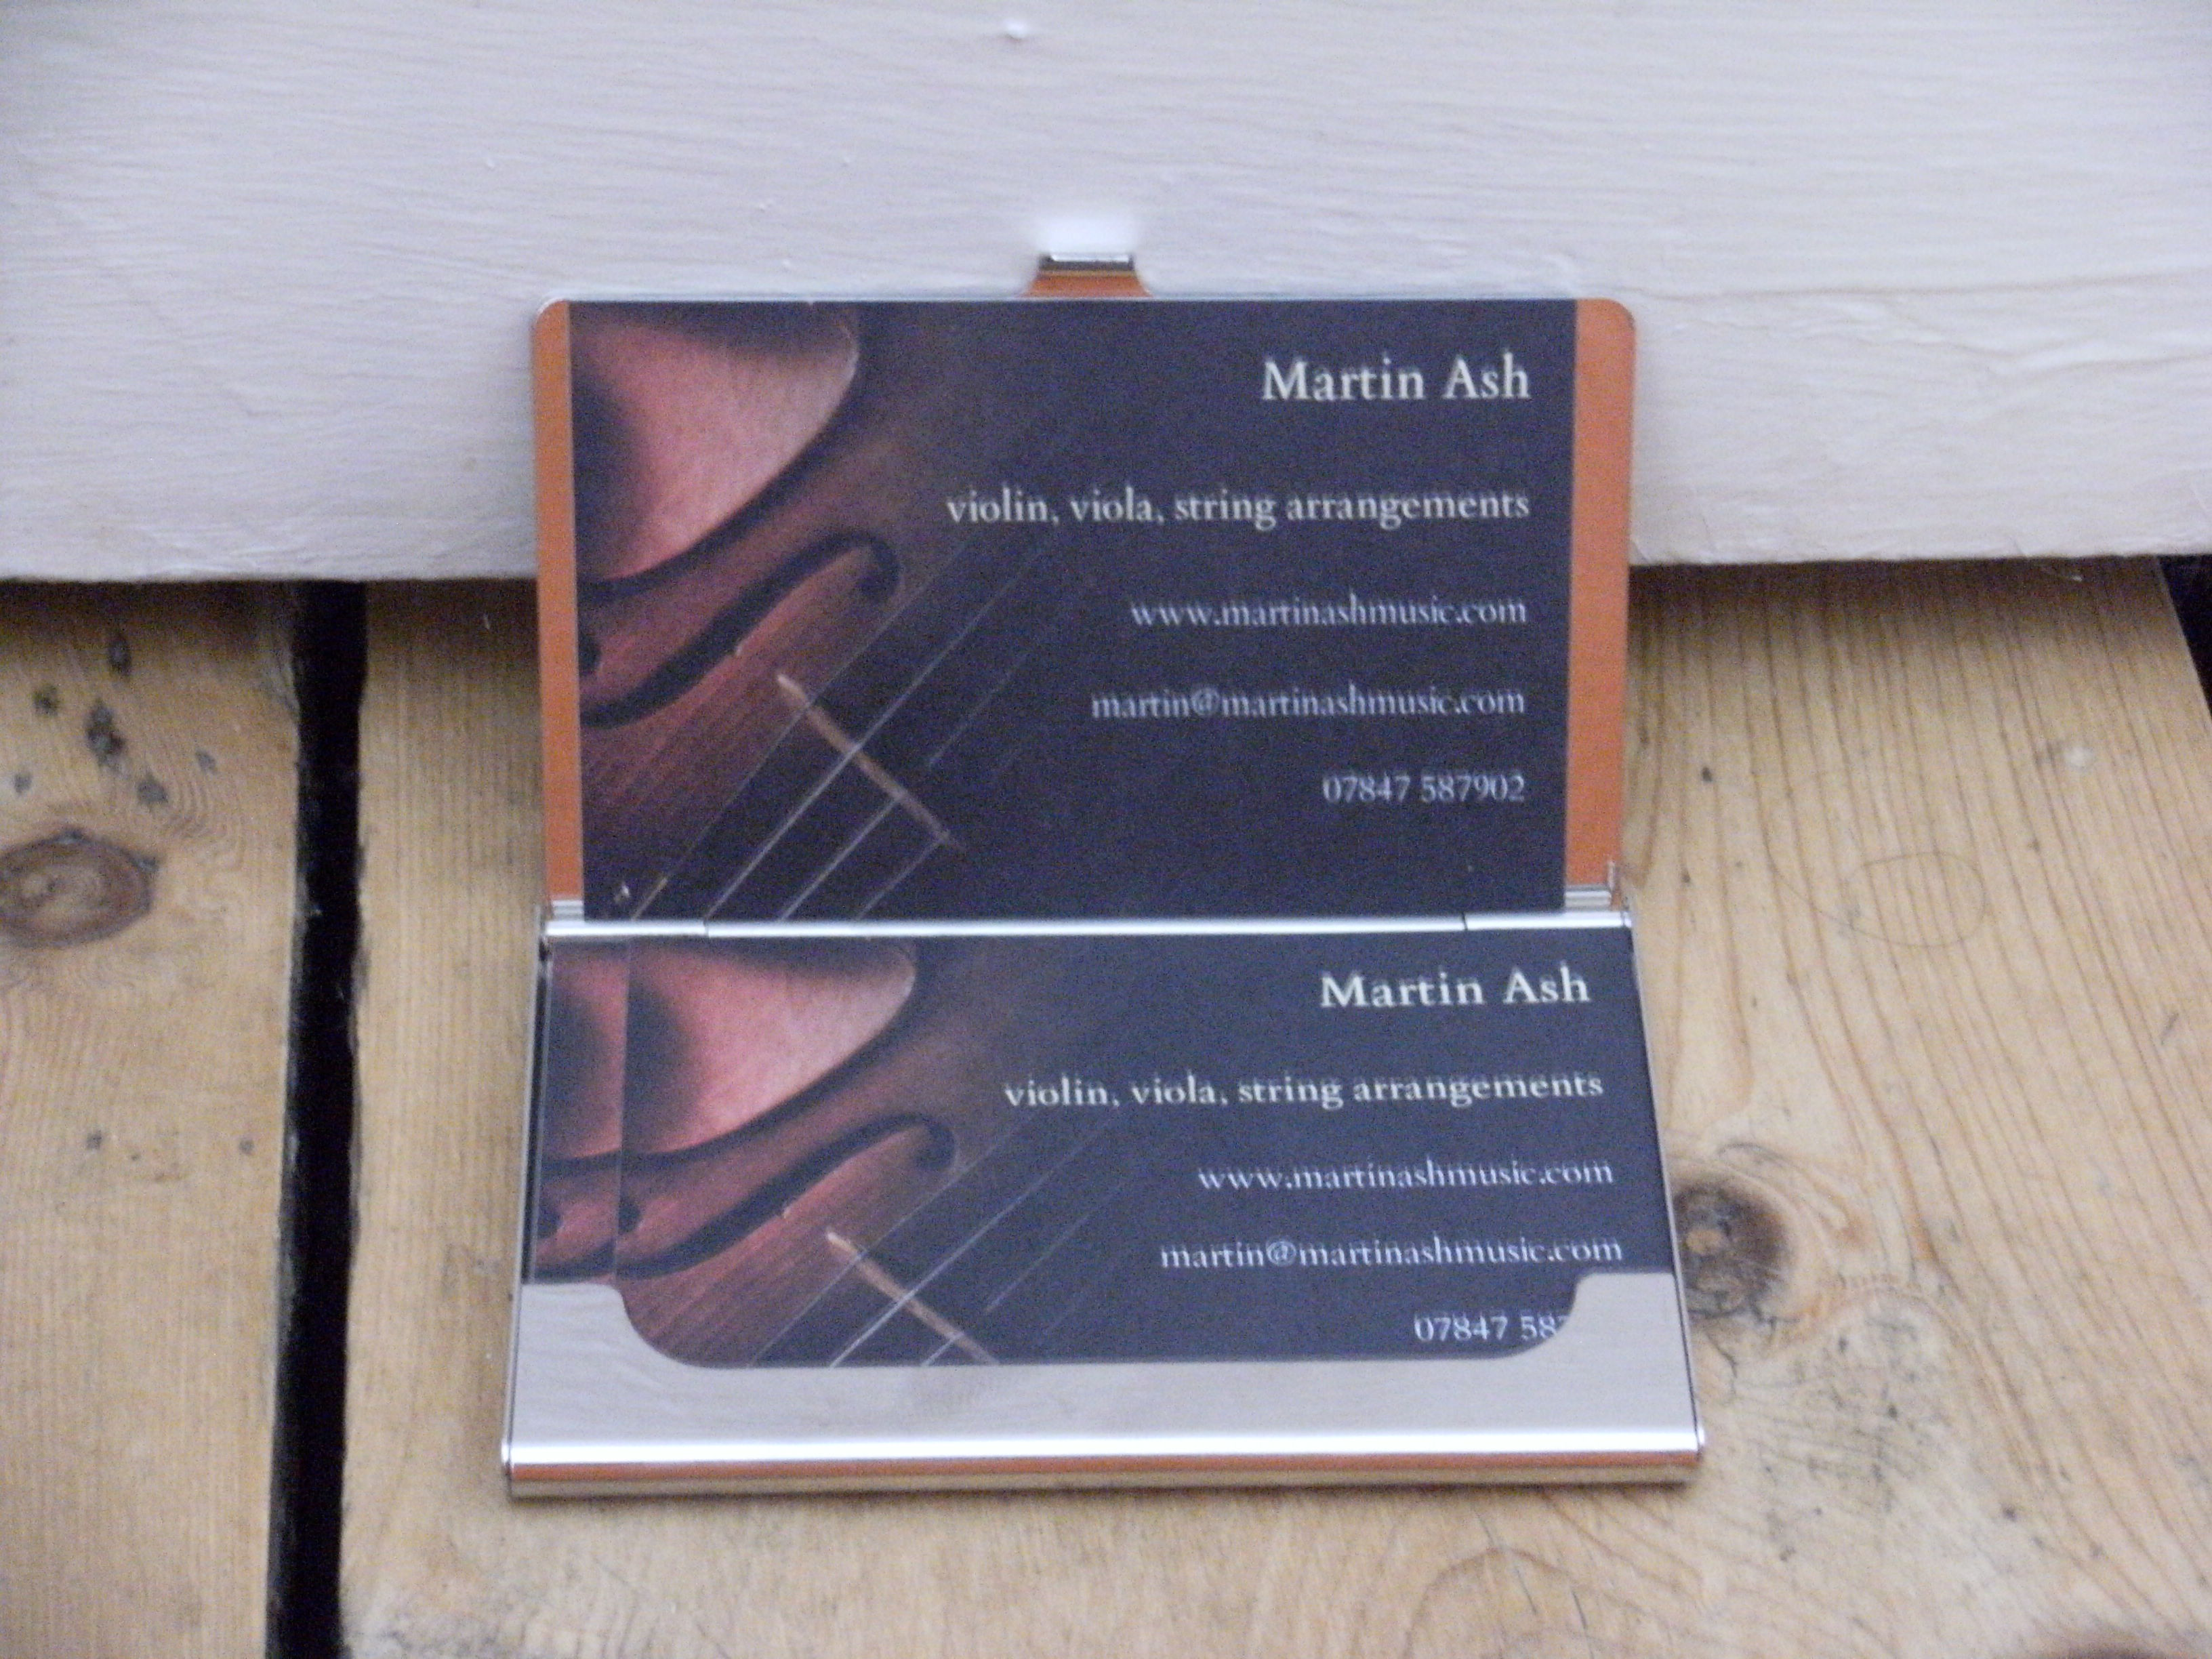 Martin Ash's business cards